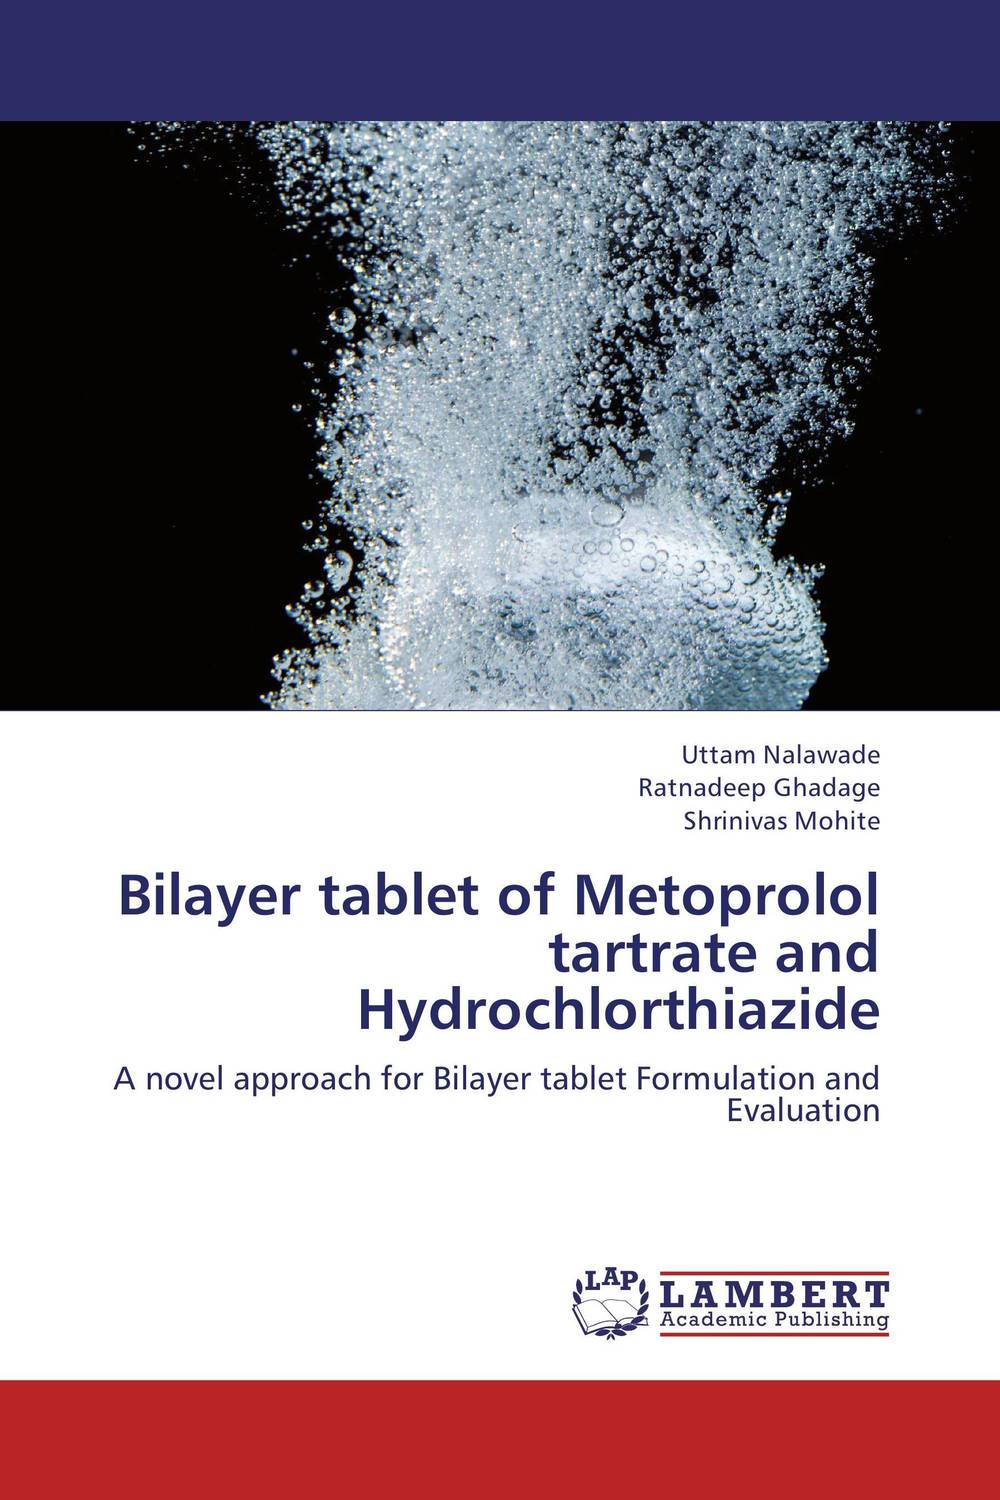 цены Bilayer tablet of Metoprolol tartrate and Hydrochlorthiazide